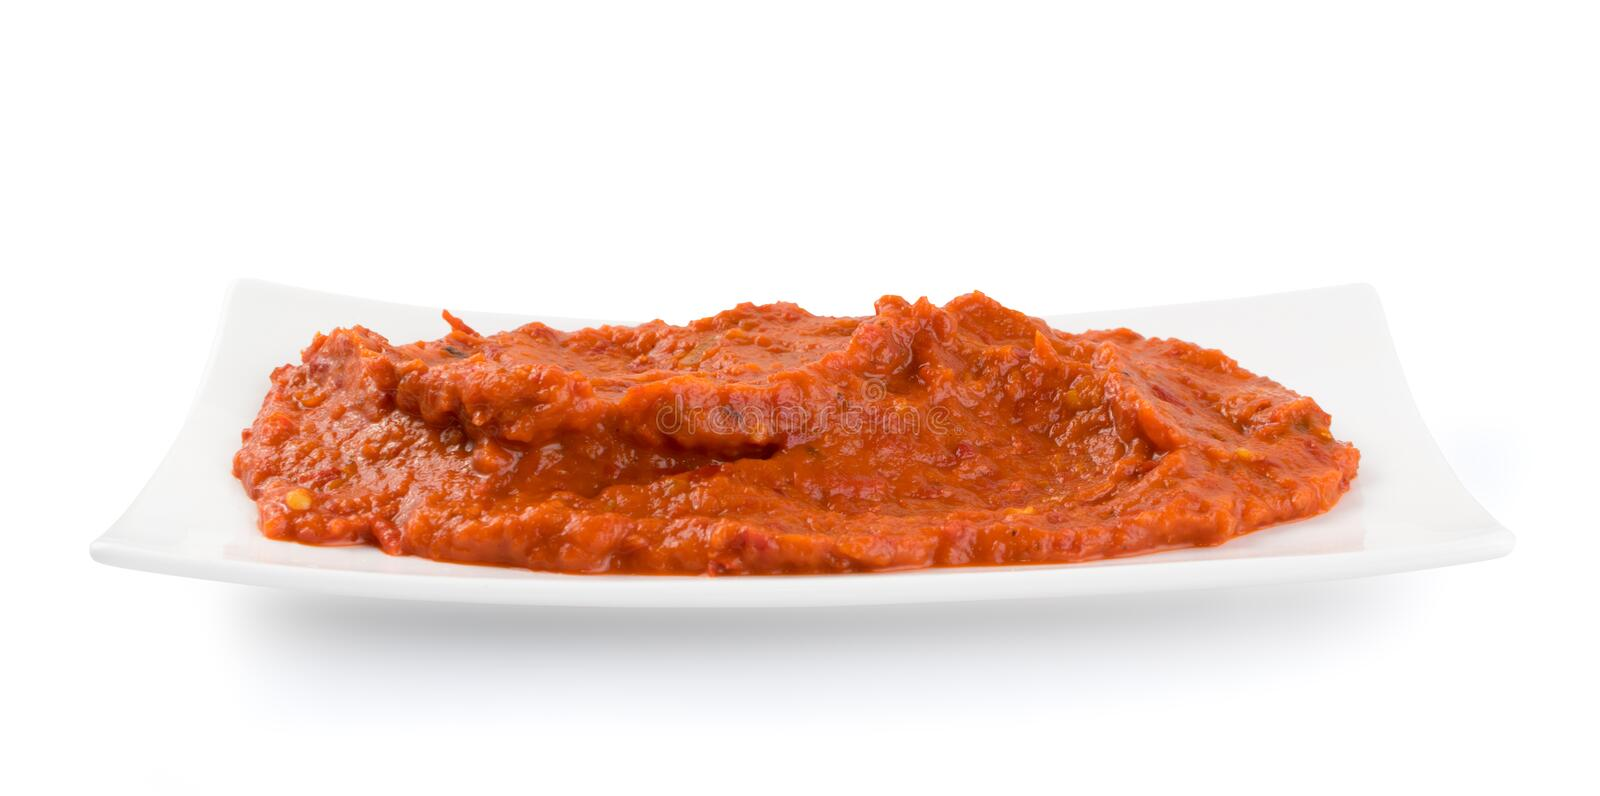 Ajvar or Pindjur Orange Vegetable Spread made from Bell Peppers. Eggplants and oil. Marinara sauce, salsa, chutney or lutenica isolated royalty free stock image